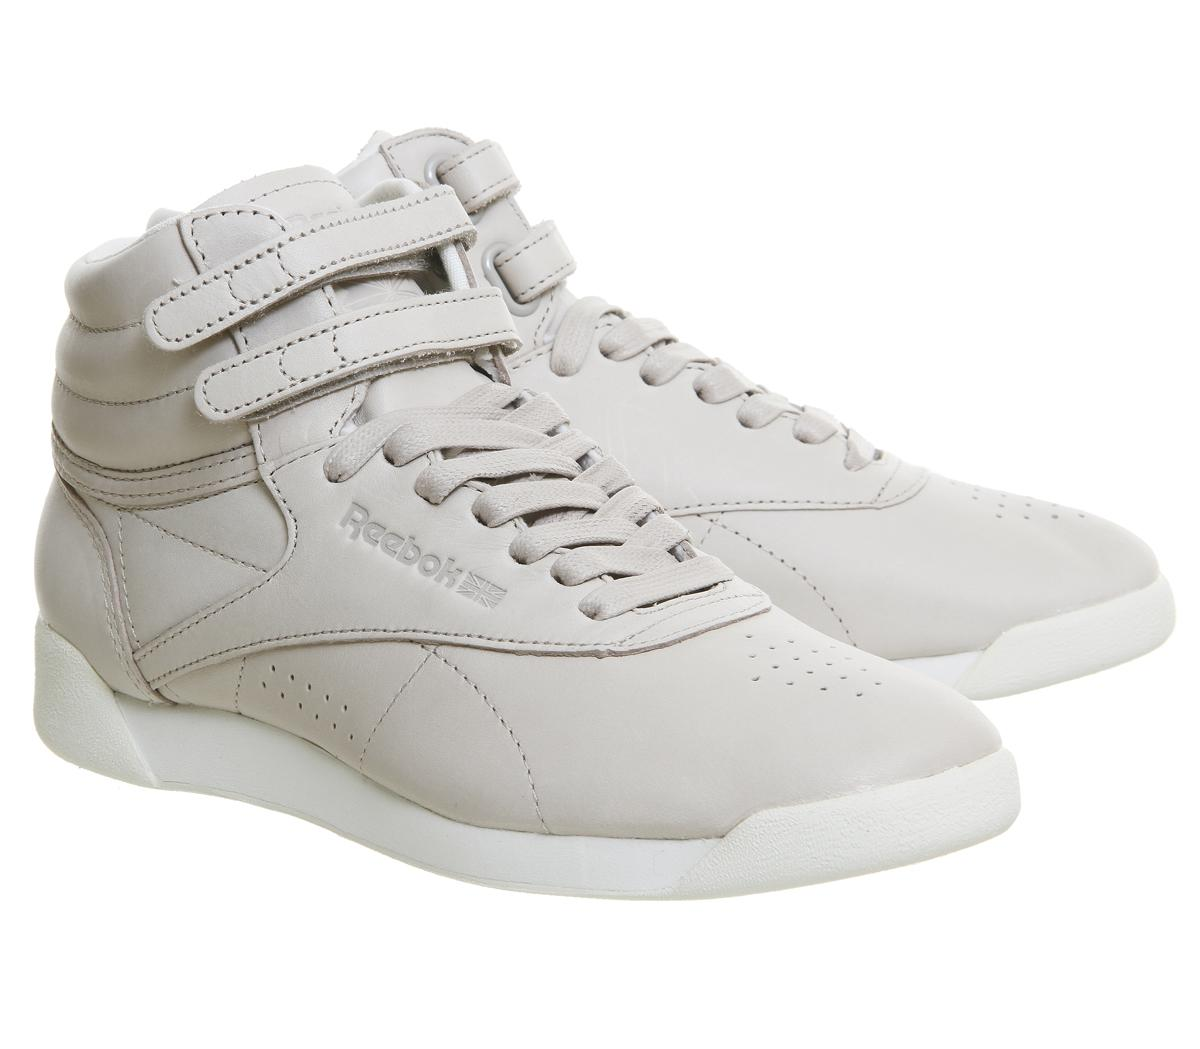 Lyst - Reebok Freestyle Hi Trainers